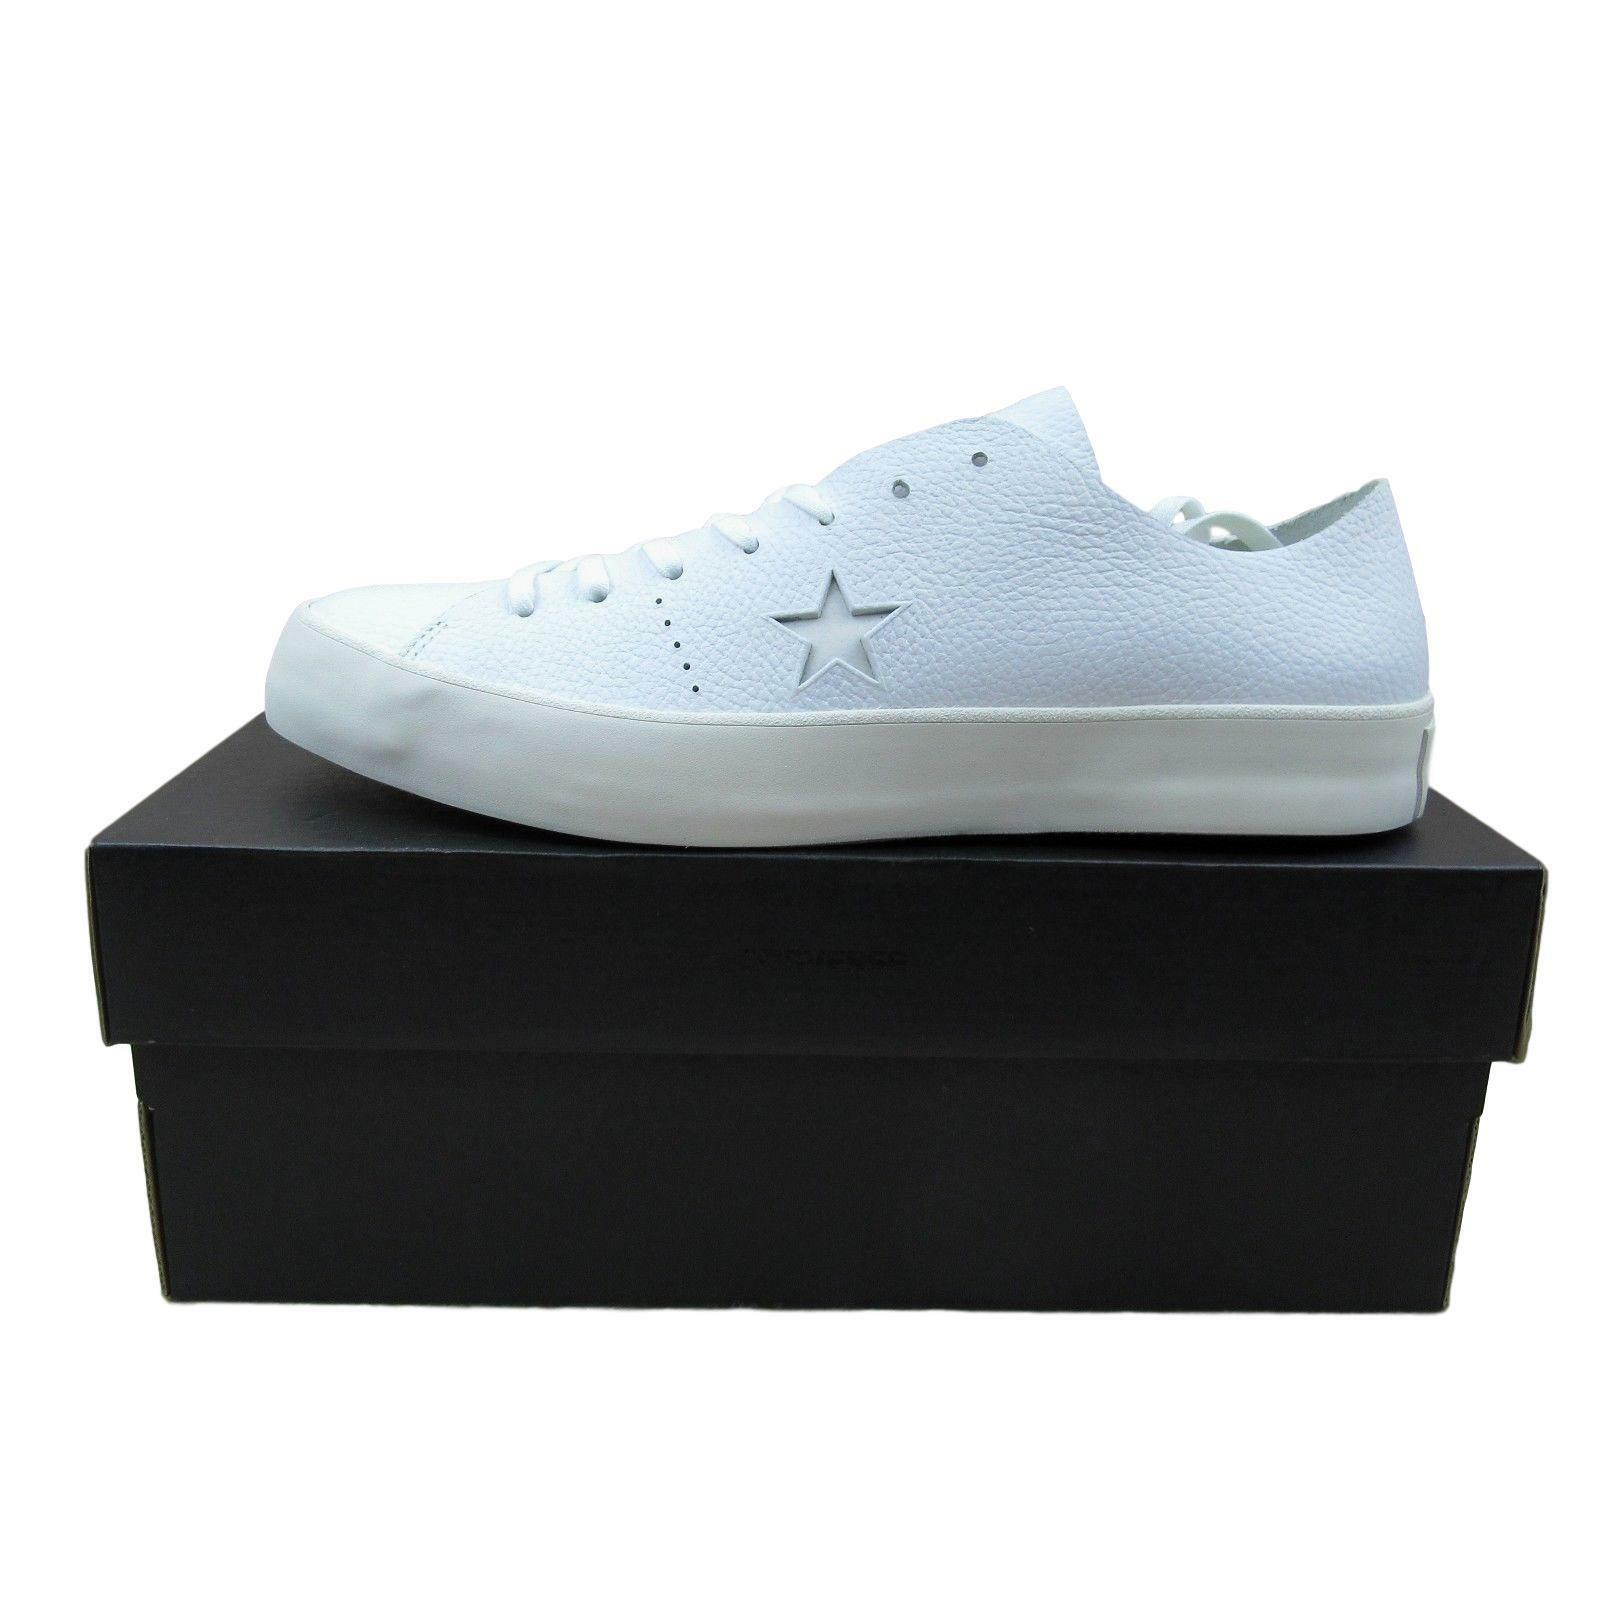 Converse One Taglia Star Prime Low Top White Oxford Taglia One 9.5 Uomo New 154839C 3855df